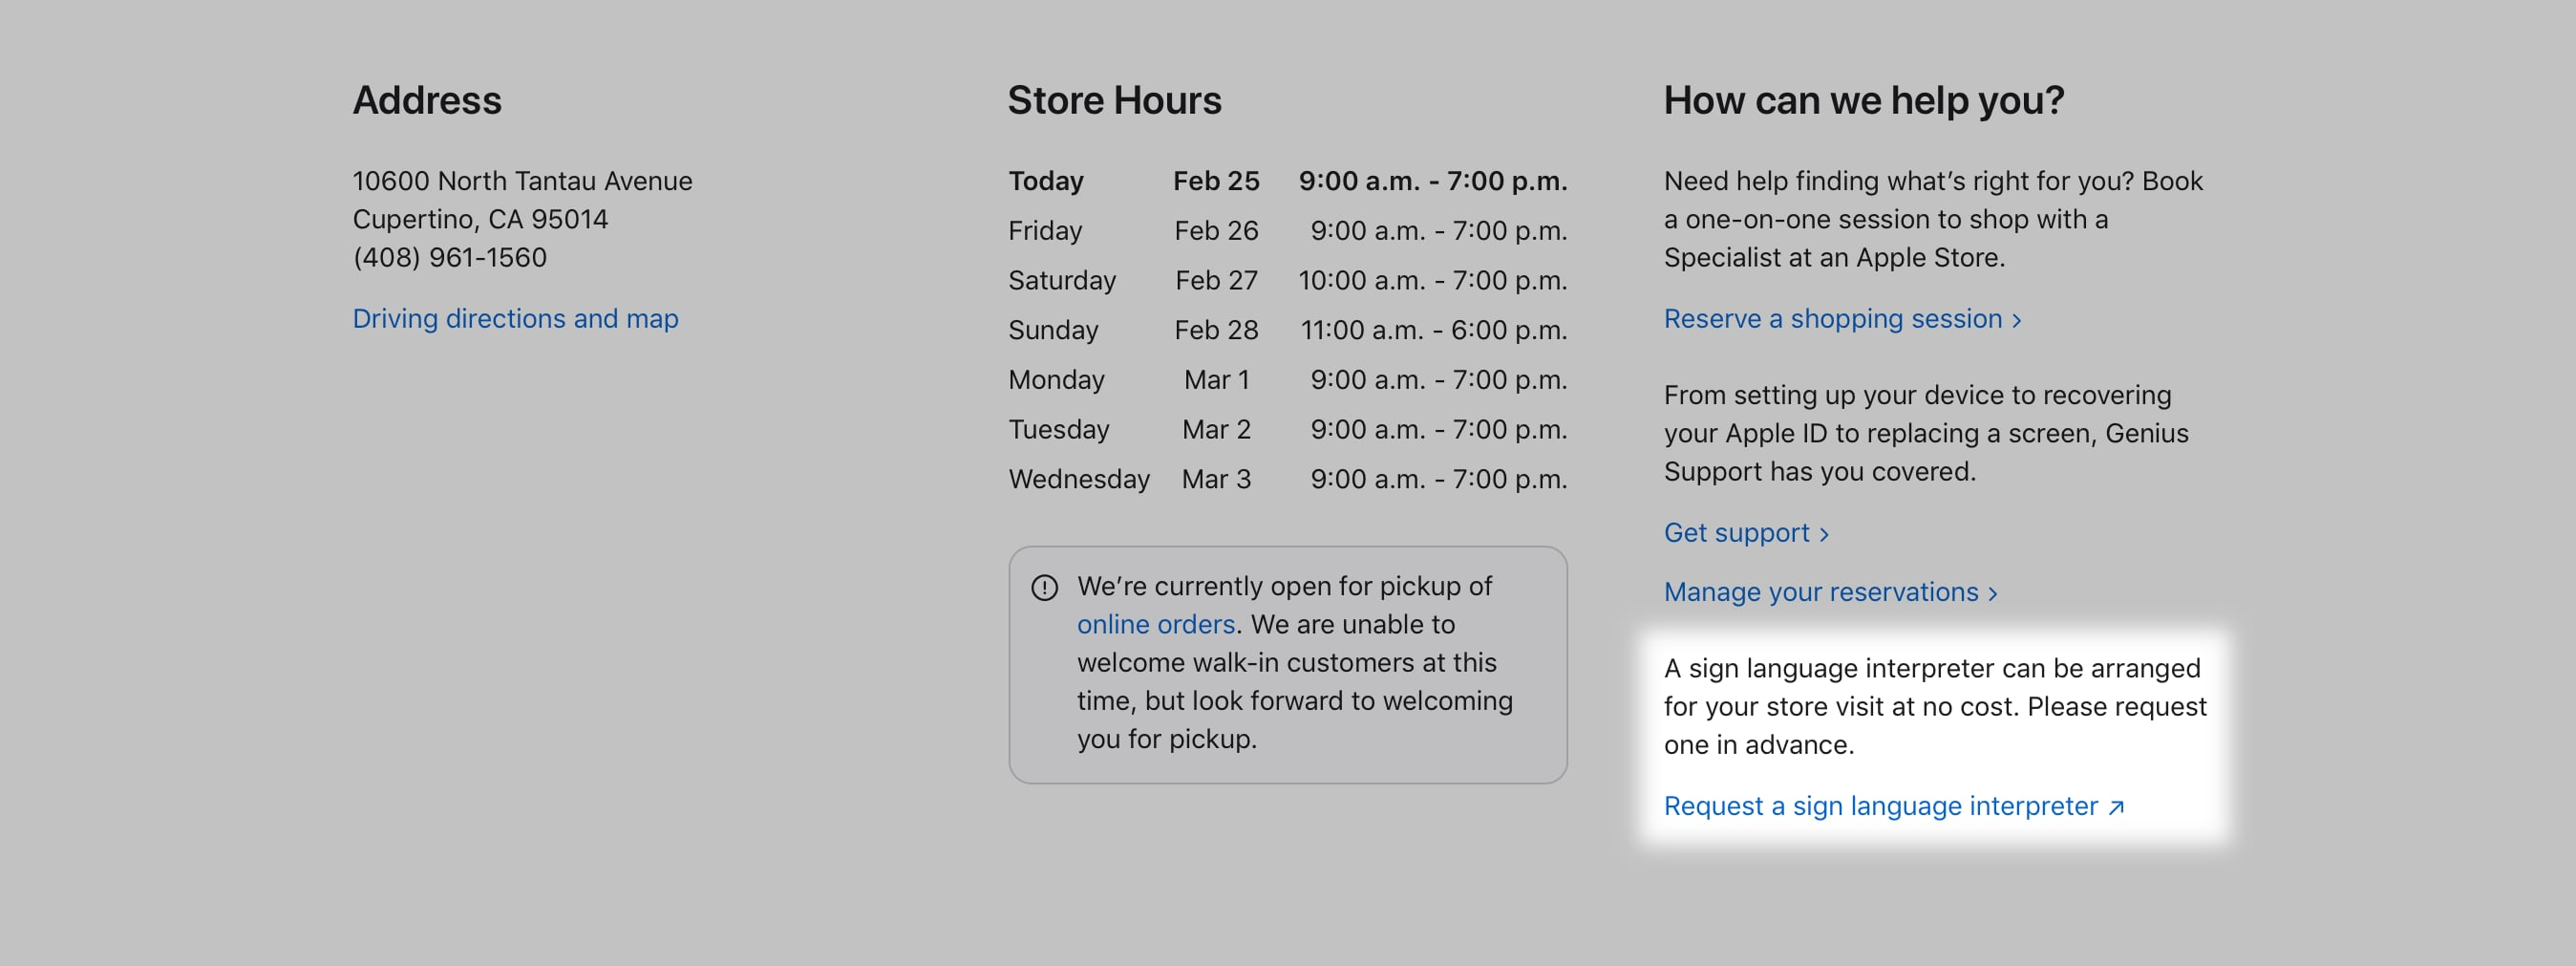 """Visit Apple's website for your local store and choose the """"request a sign language interpreter"""" link."""